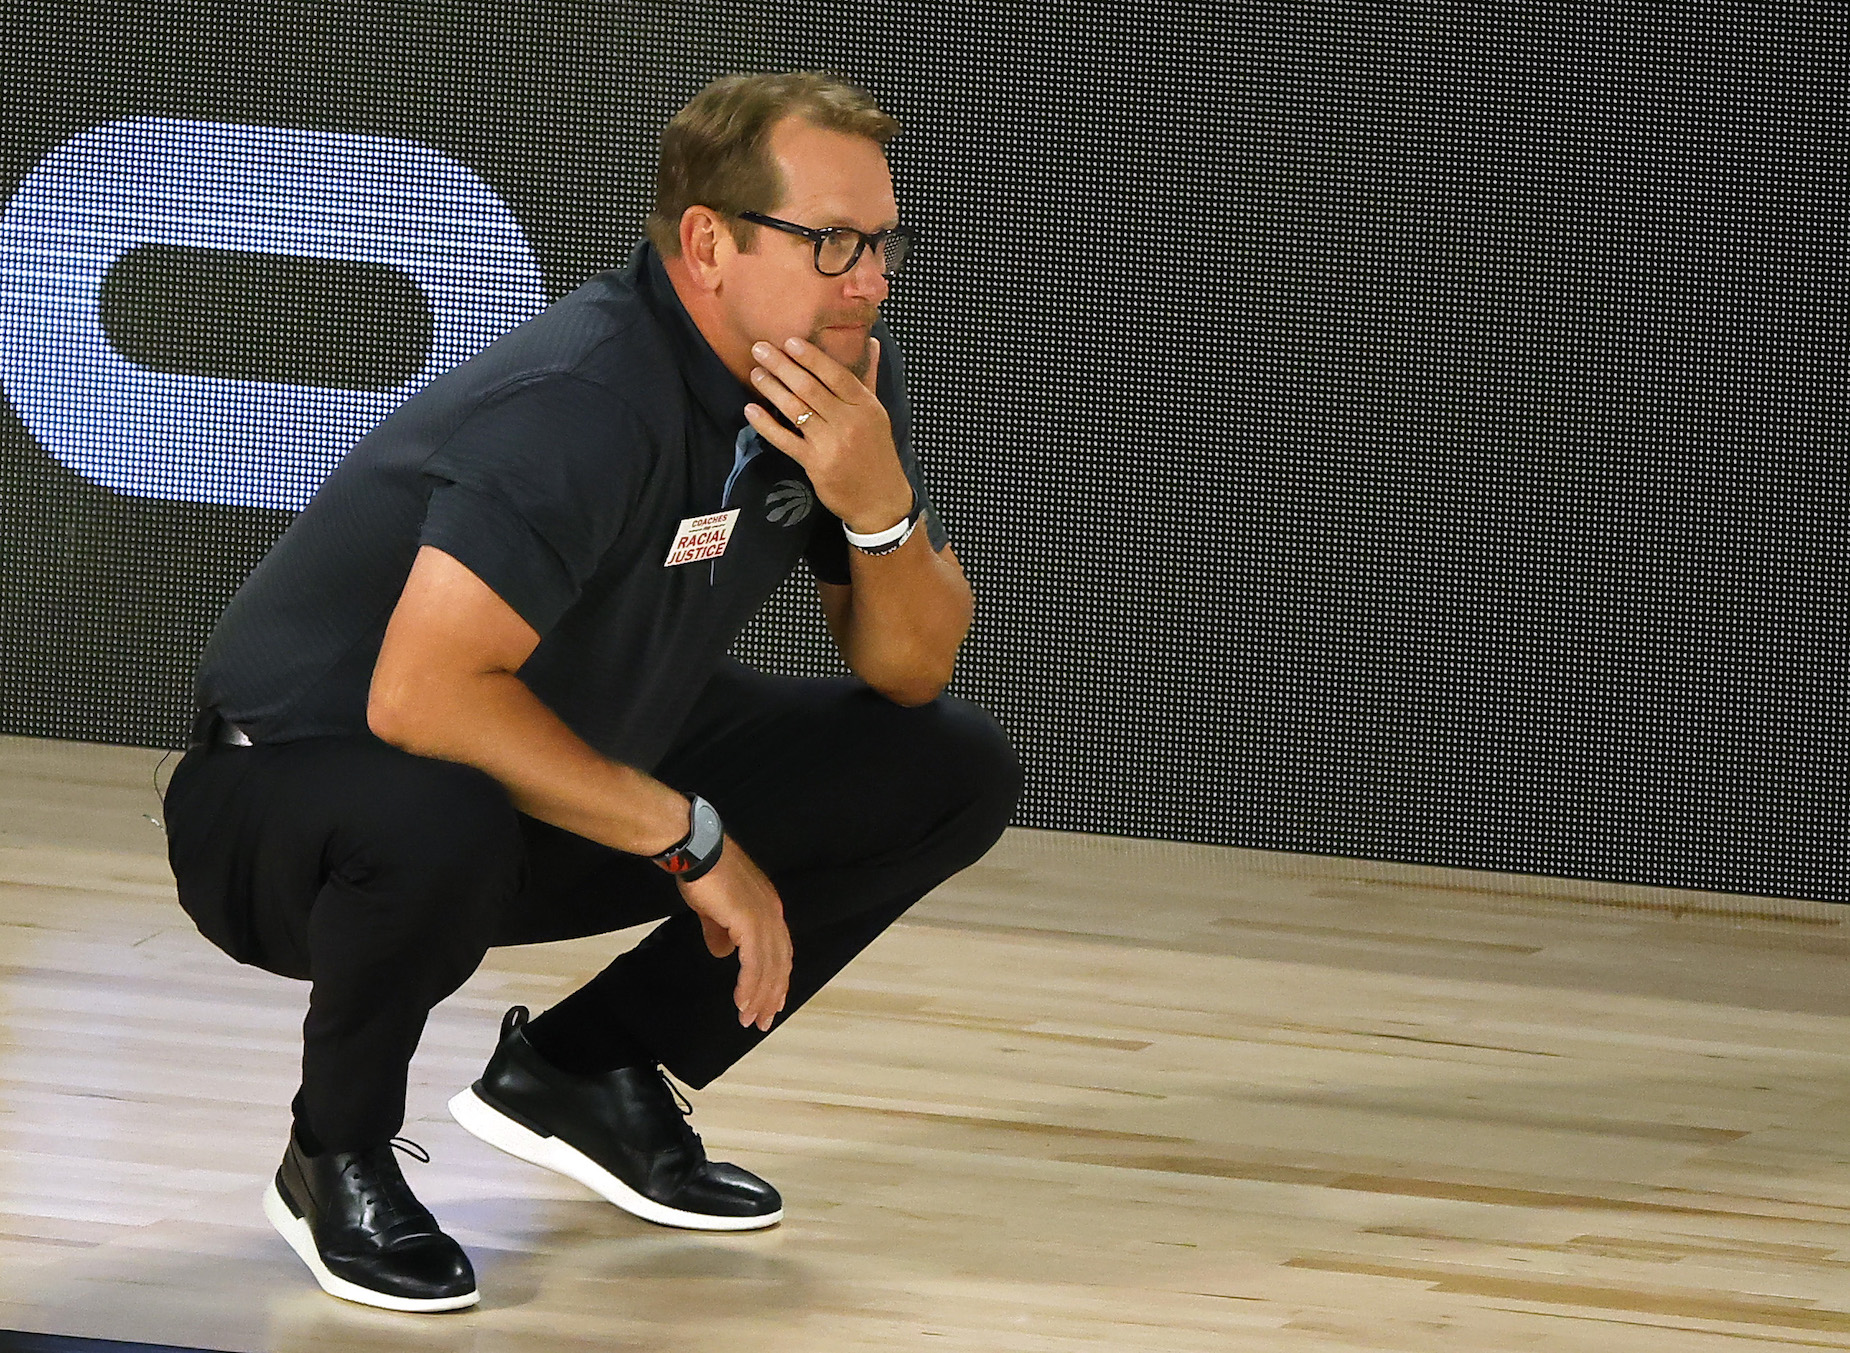 Toronto Raptors coach Nick Nurse almost quit basketball before making it to the NBA.